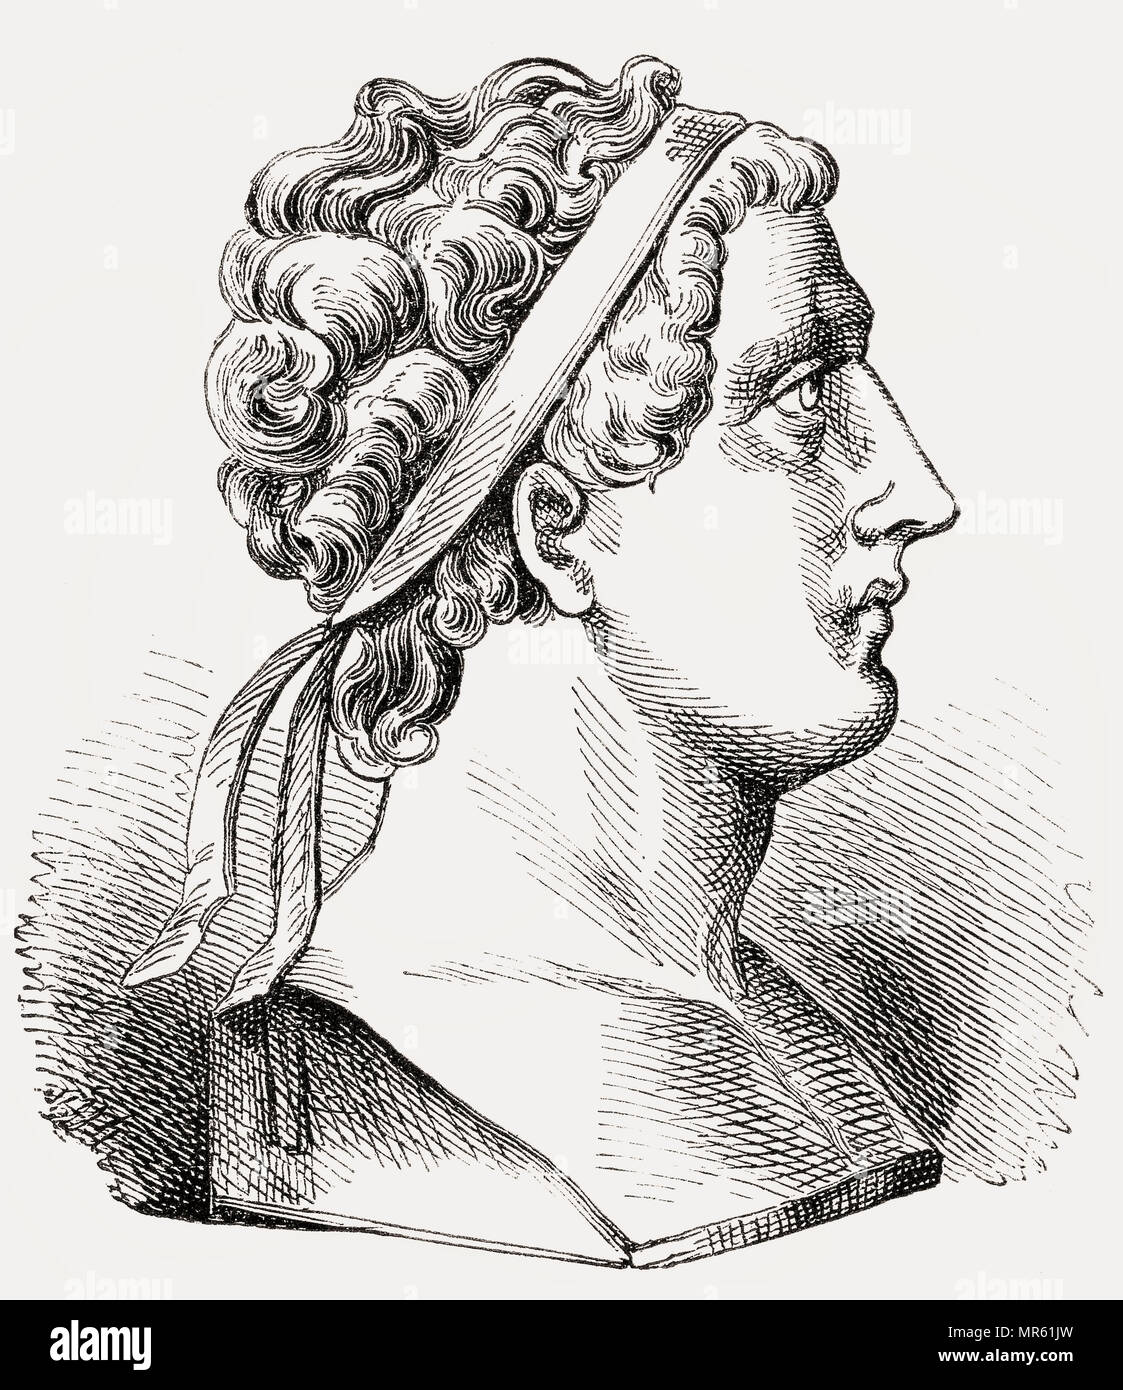 Antiochus III the Great, c. 241–187 BC, a Hellenistic Greek king, the 6th ruler of the Seleucid Empire - Stock Image